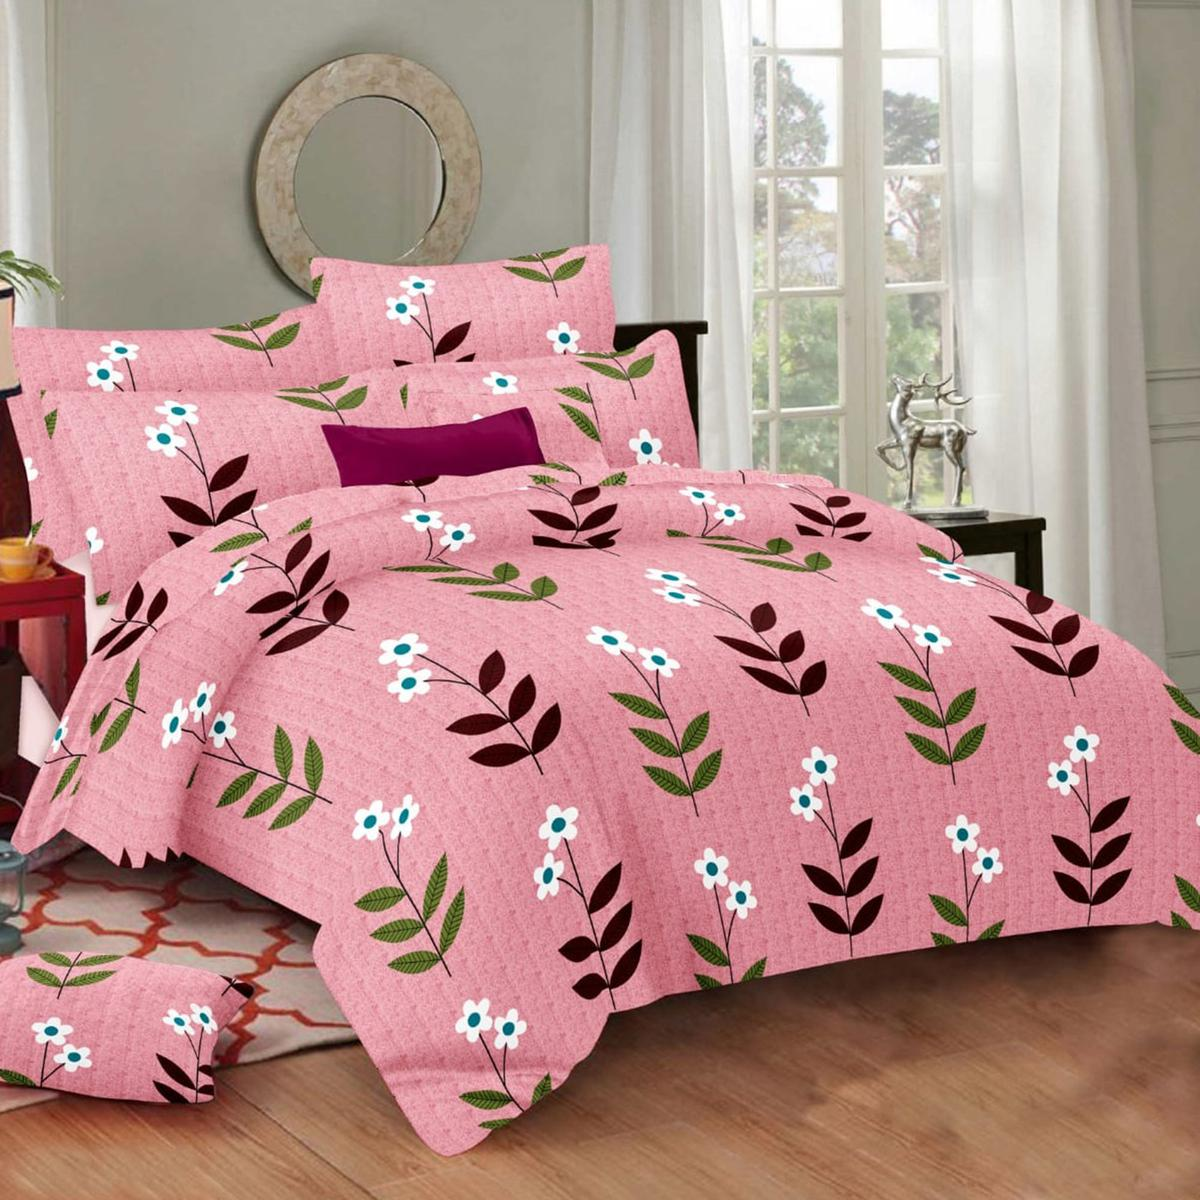 Eye-catching Pink Colored Floral Printed Cotton Double Bedsheet With Pillow Cover